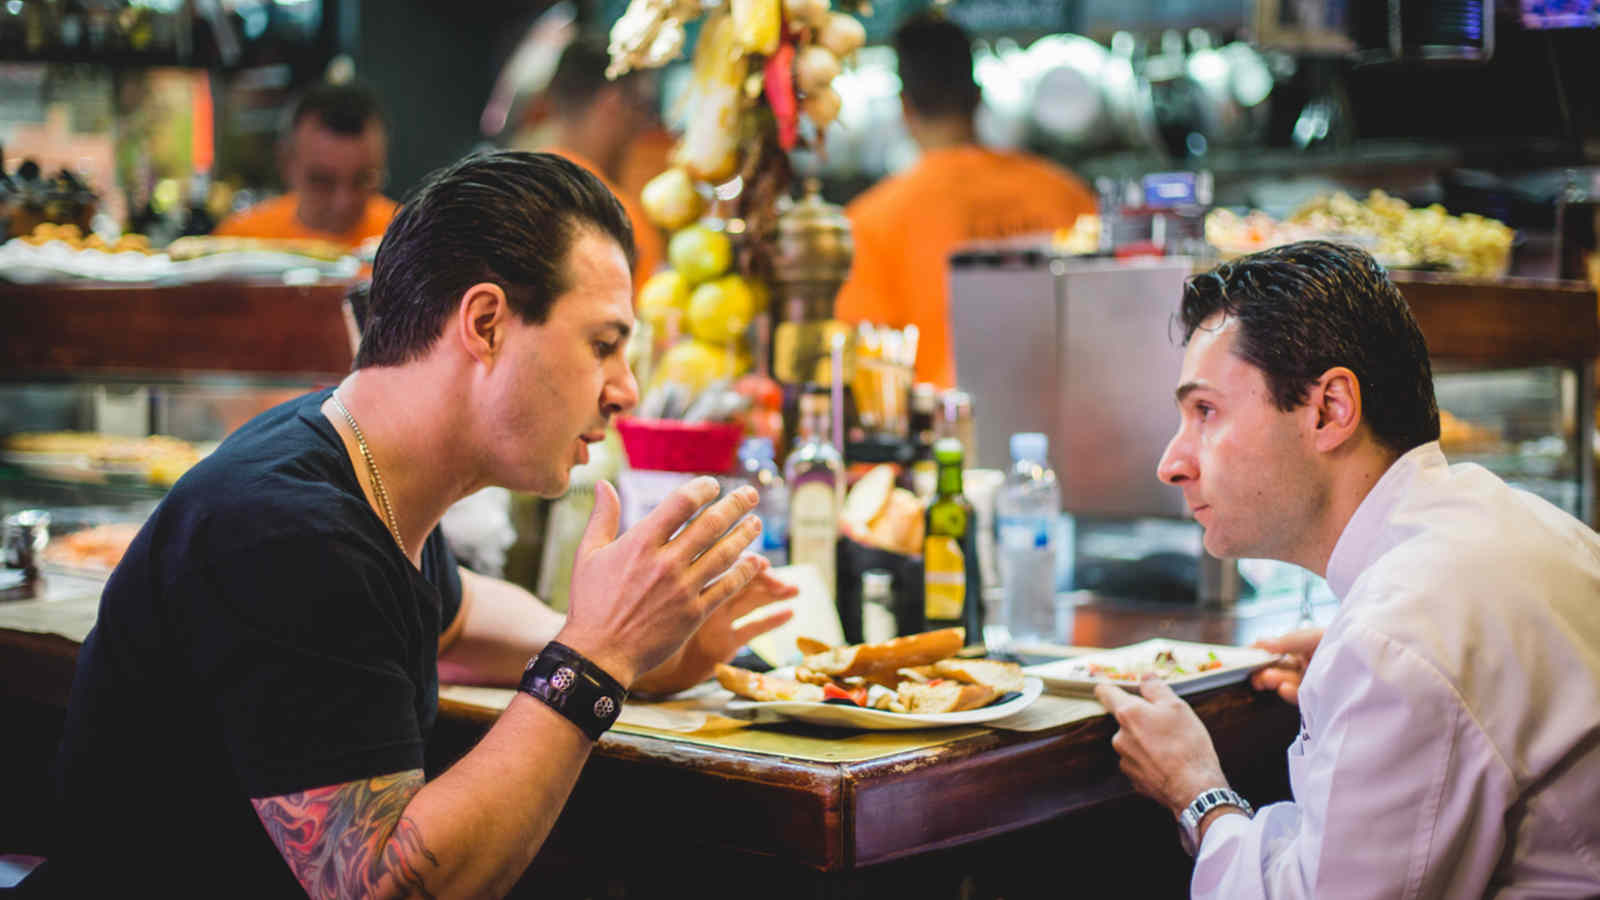 Johnny Iuzzini with Juan Camero - the Chef of Le Méridien Barcelona